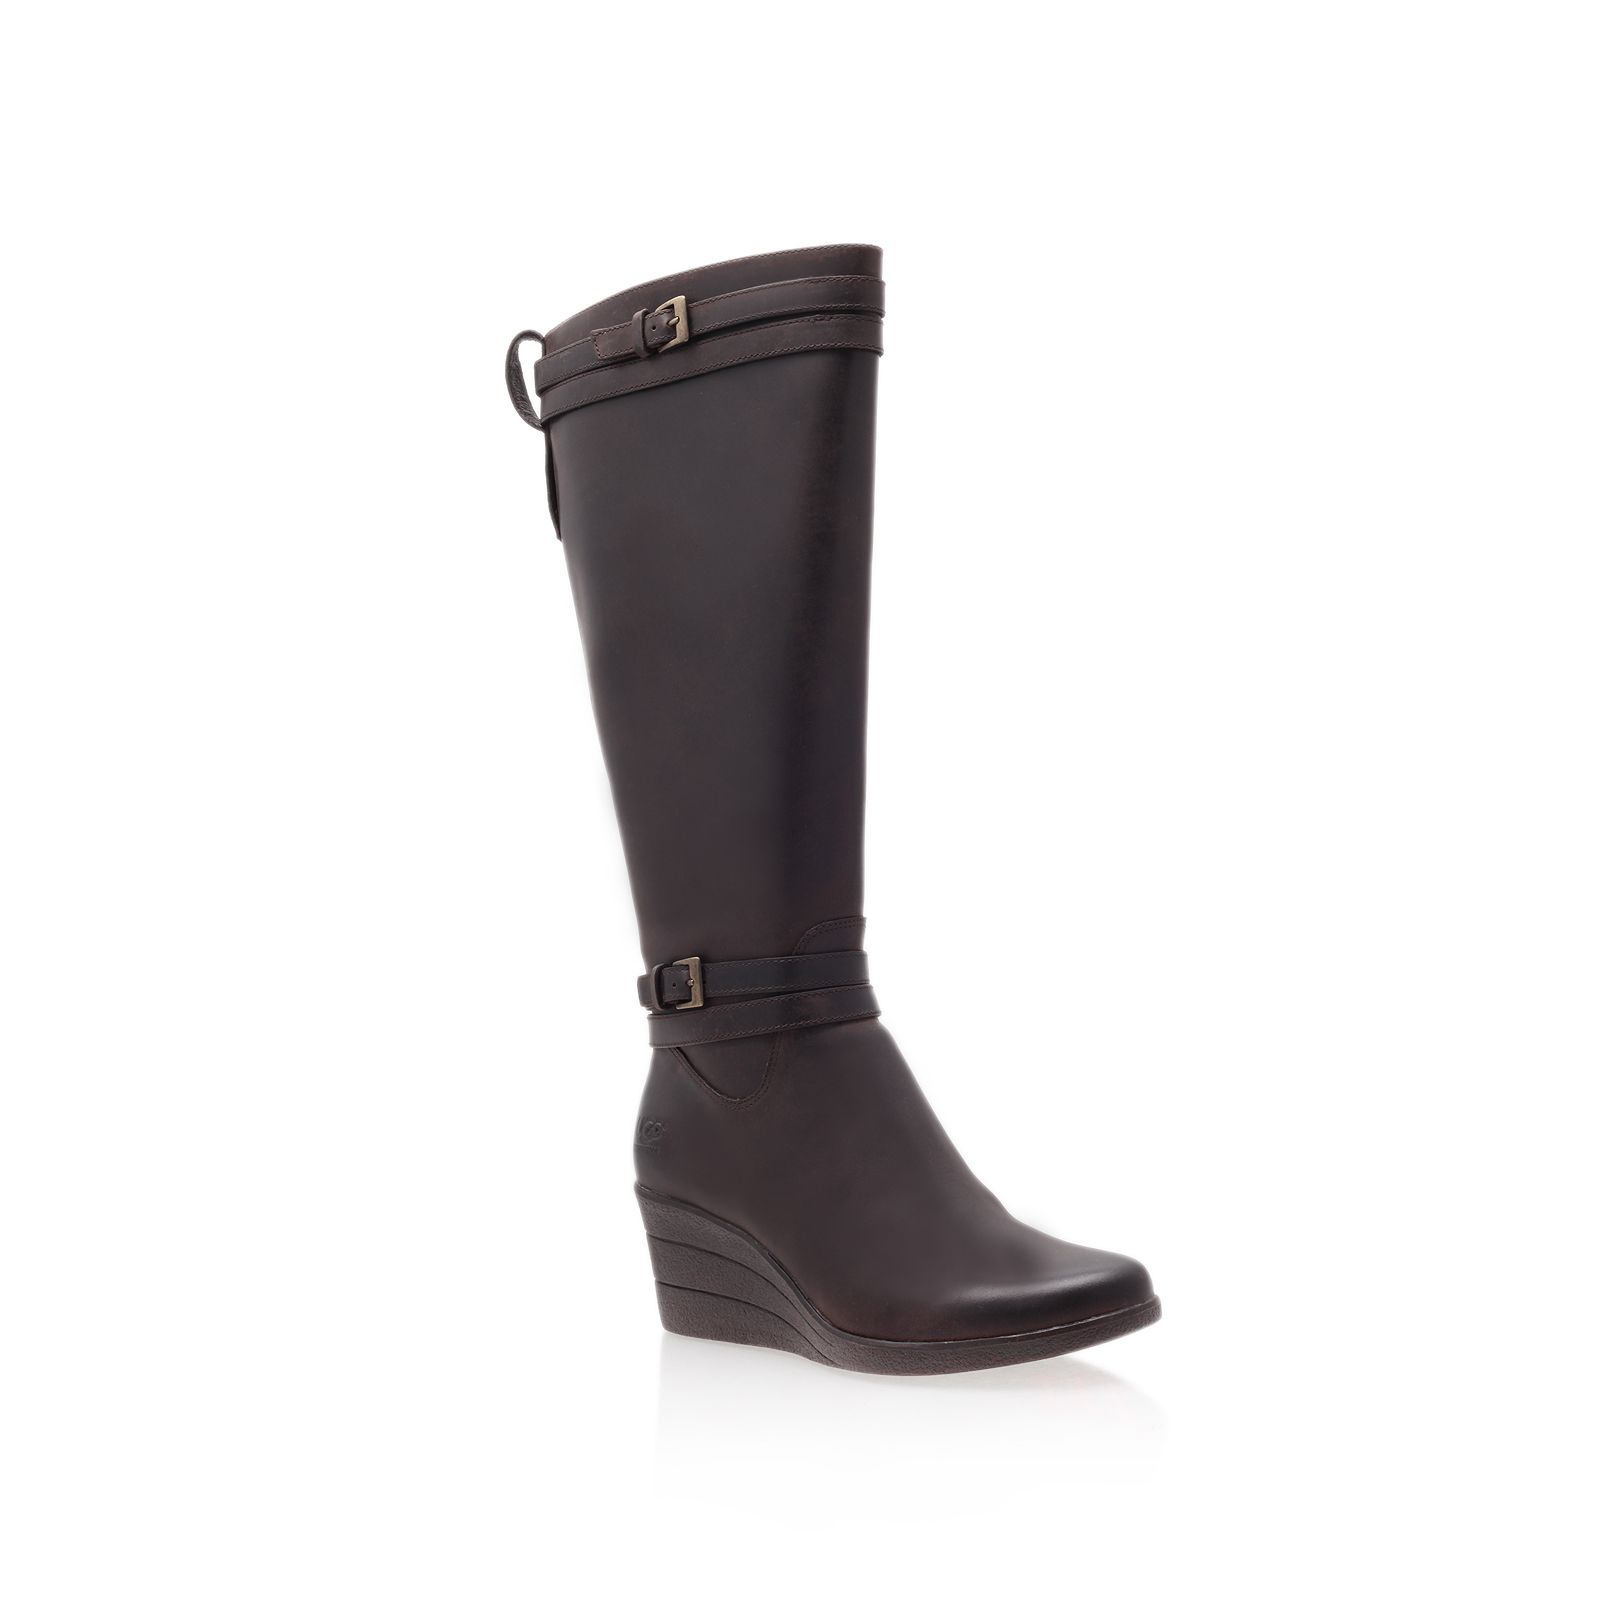 Irmah knee high boots